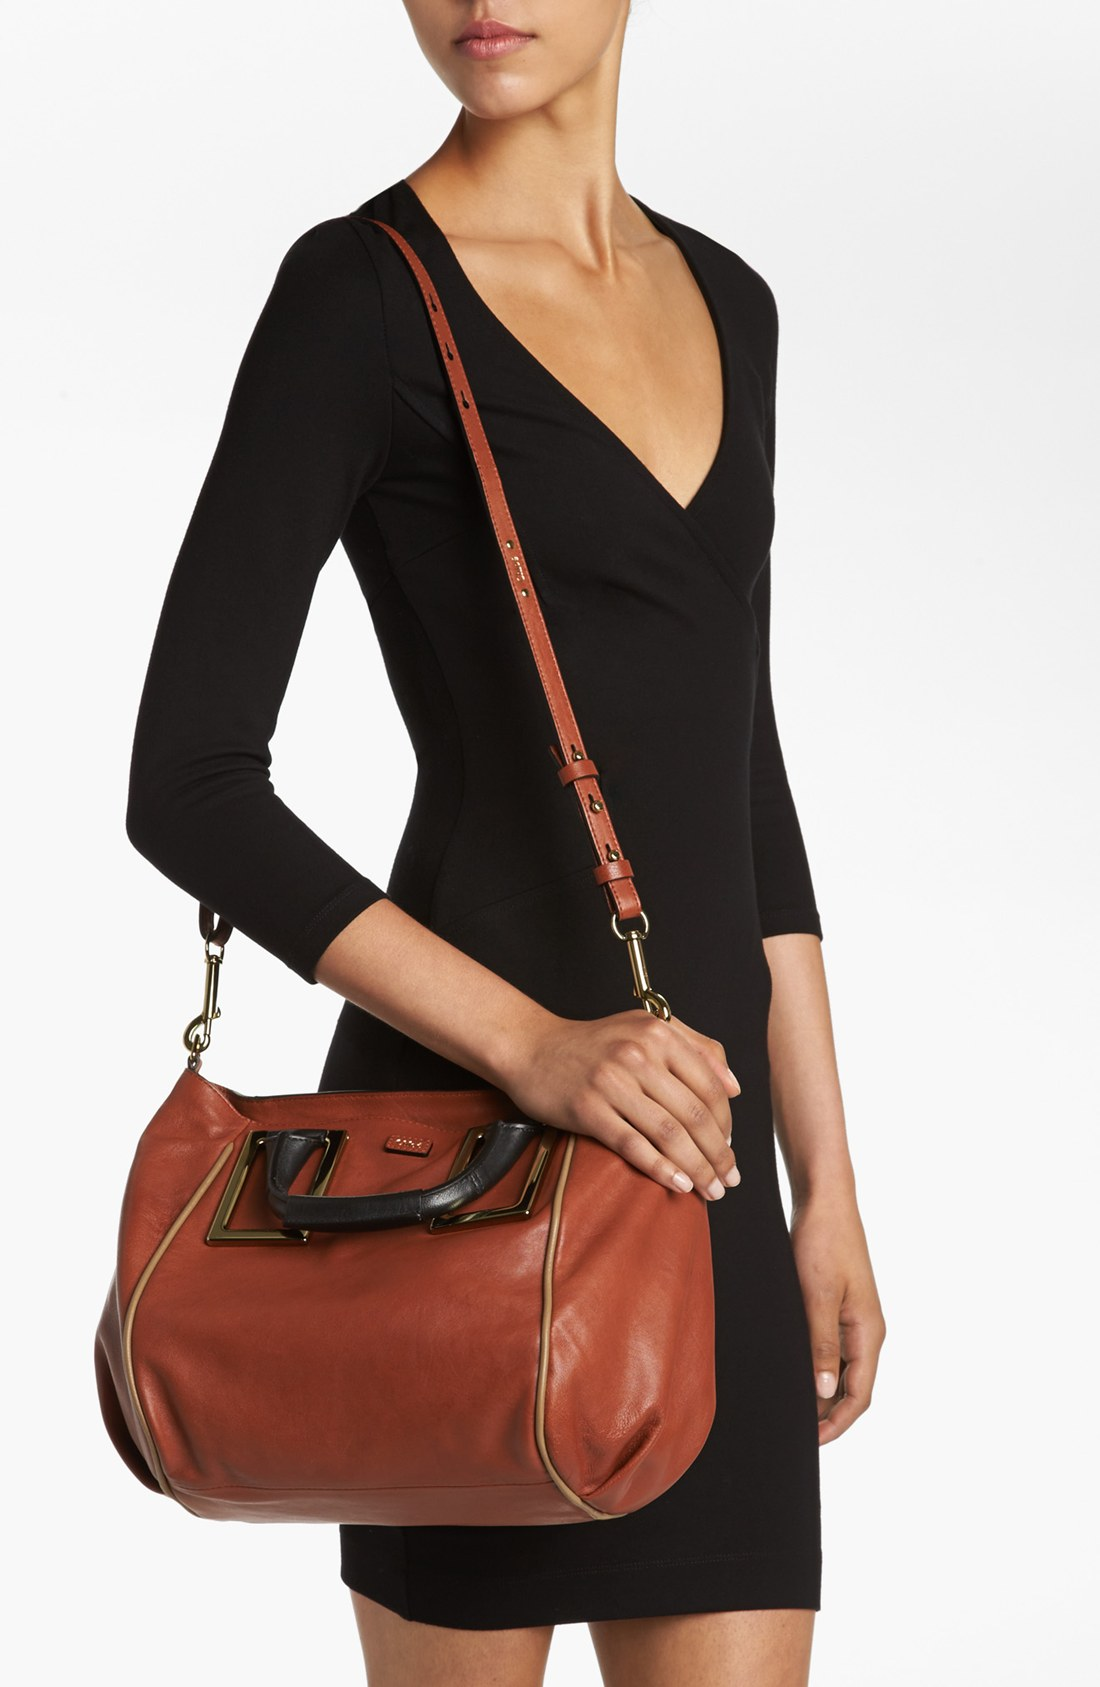 Chlo¨¦ Ethel Medium Leather Tote in Red (Red Blush) | Lyst